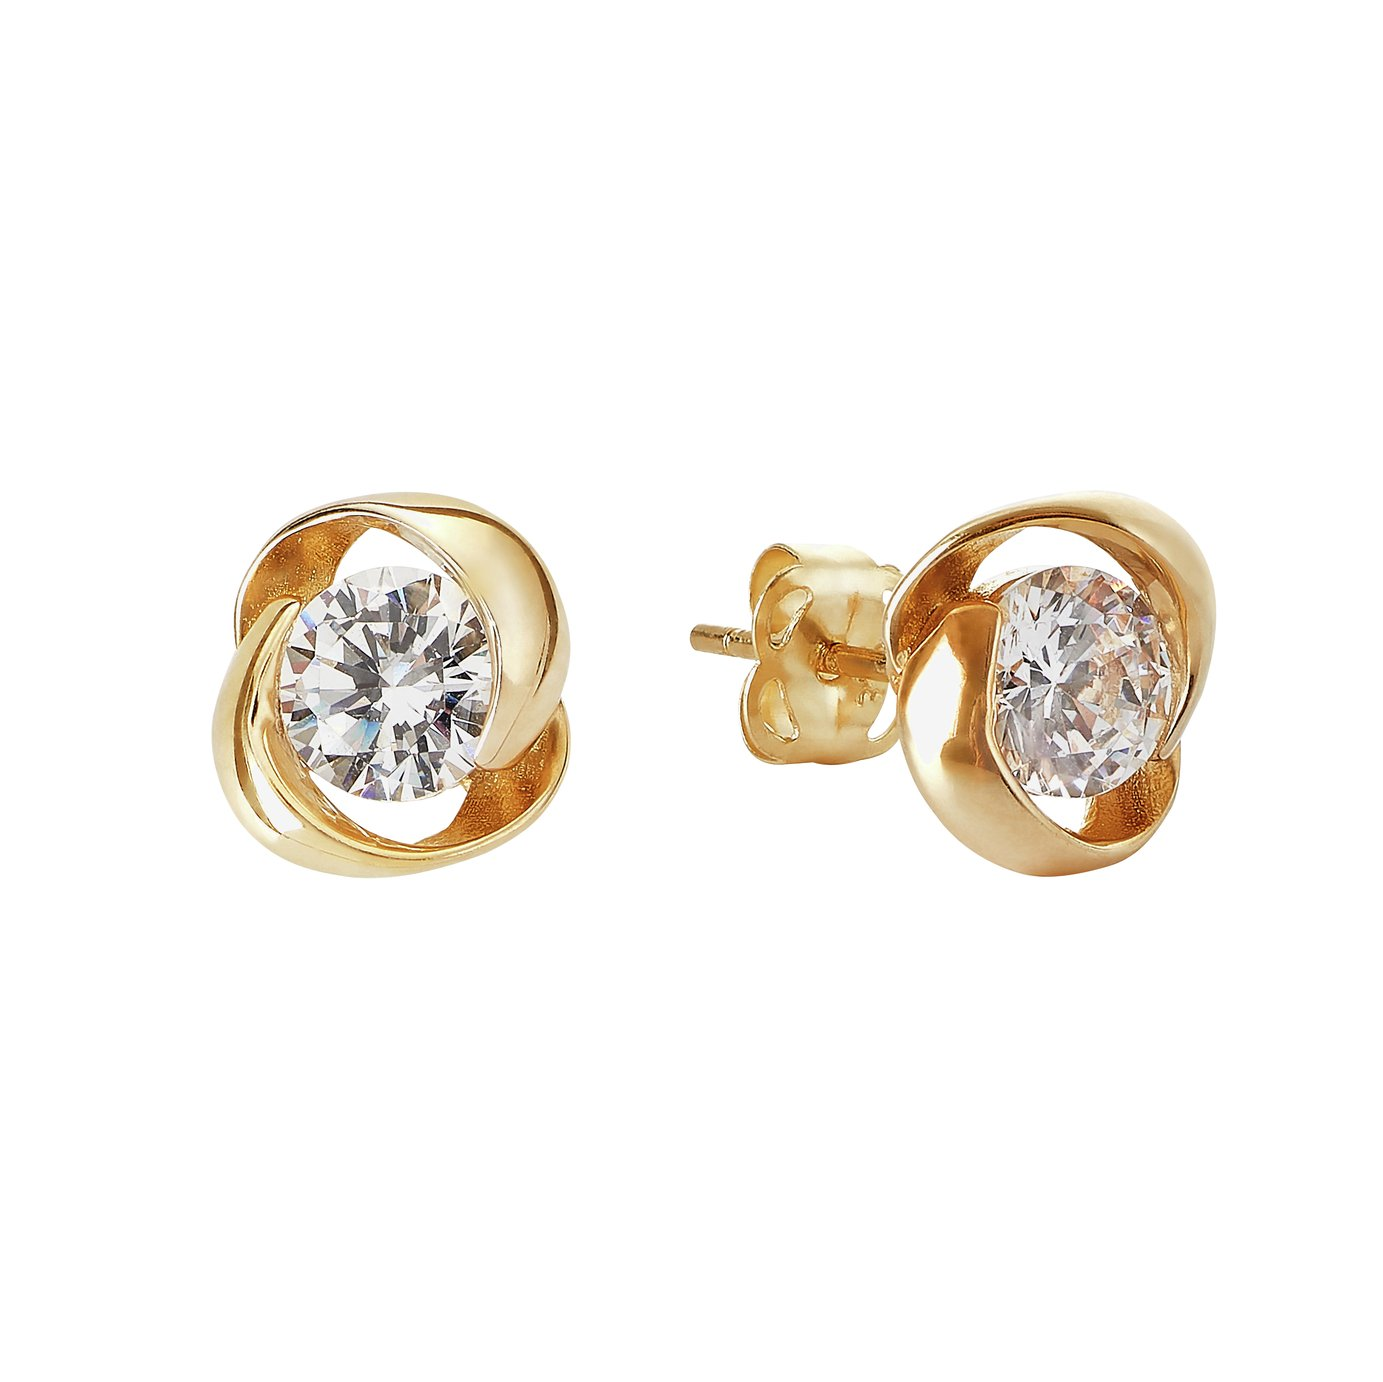 f7a8abc68 Revere 9ct Gold Cubic Zirconia Knot Stud Earrings from Revere